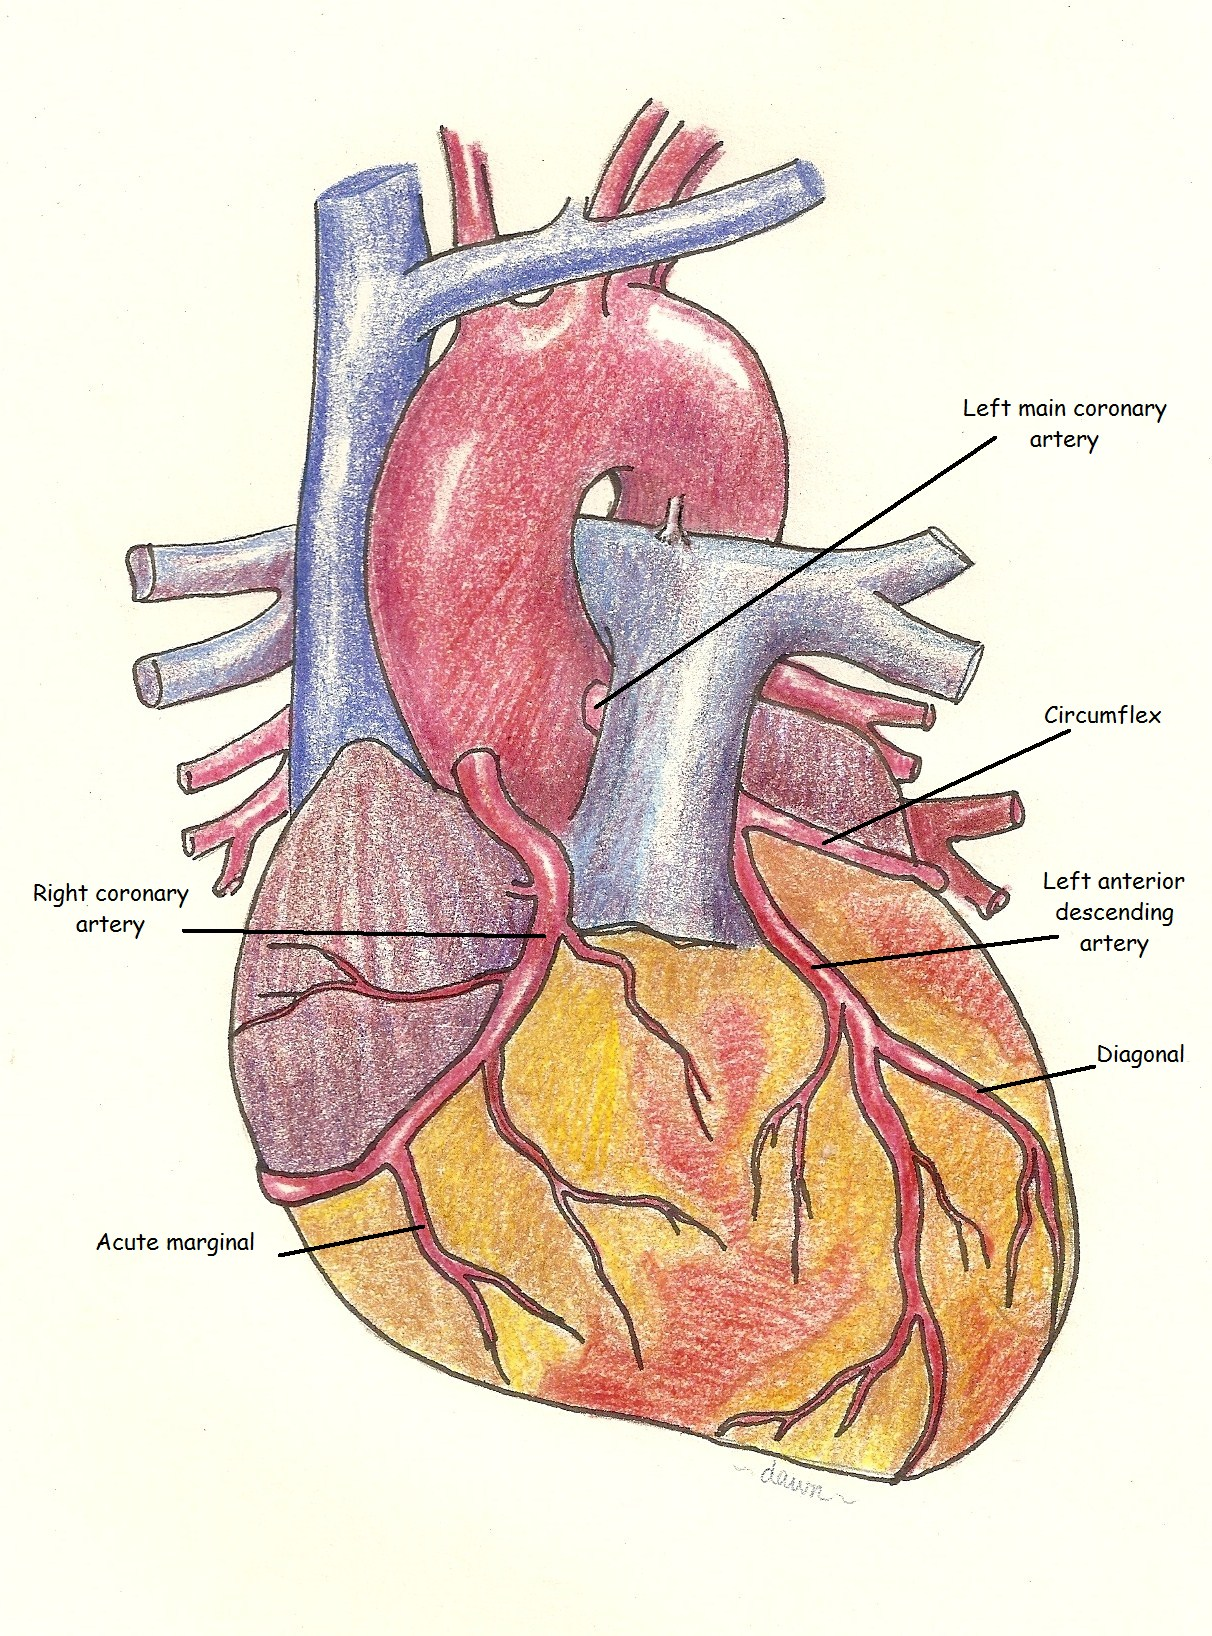 3717710 as well Img index besides Ebstein in addition 2012 05 01 archive additionally Img index. on ventricular aberration